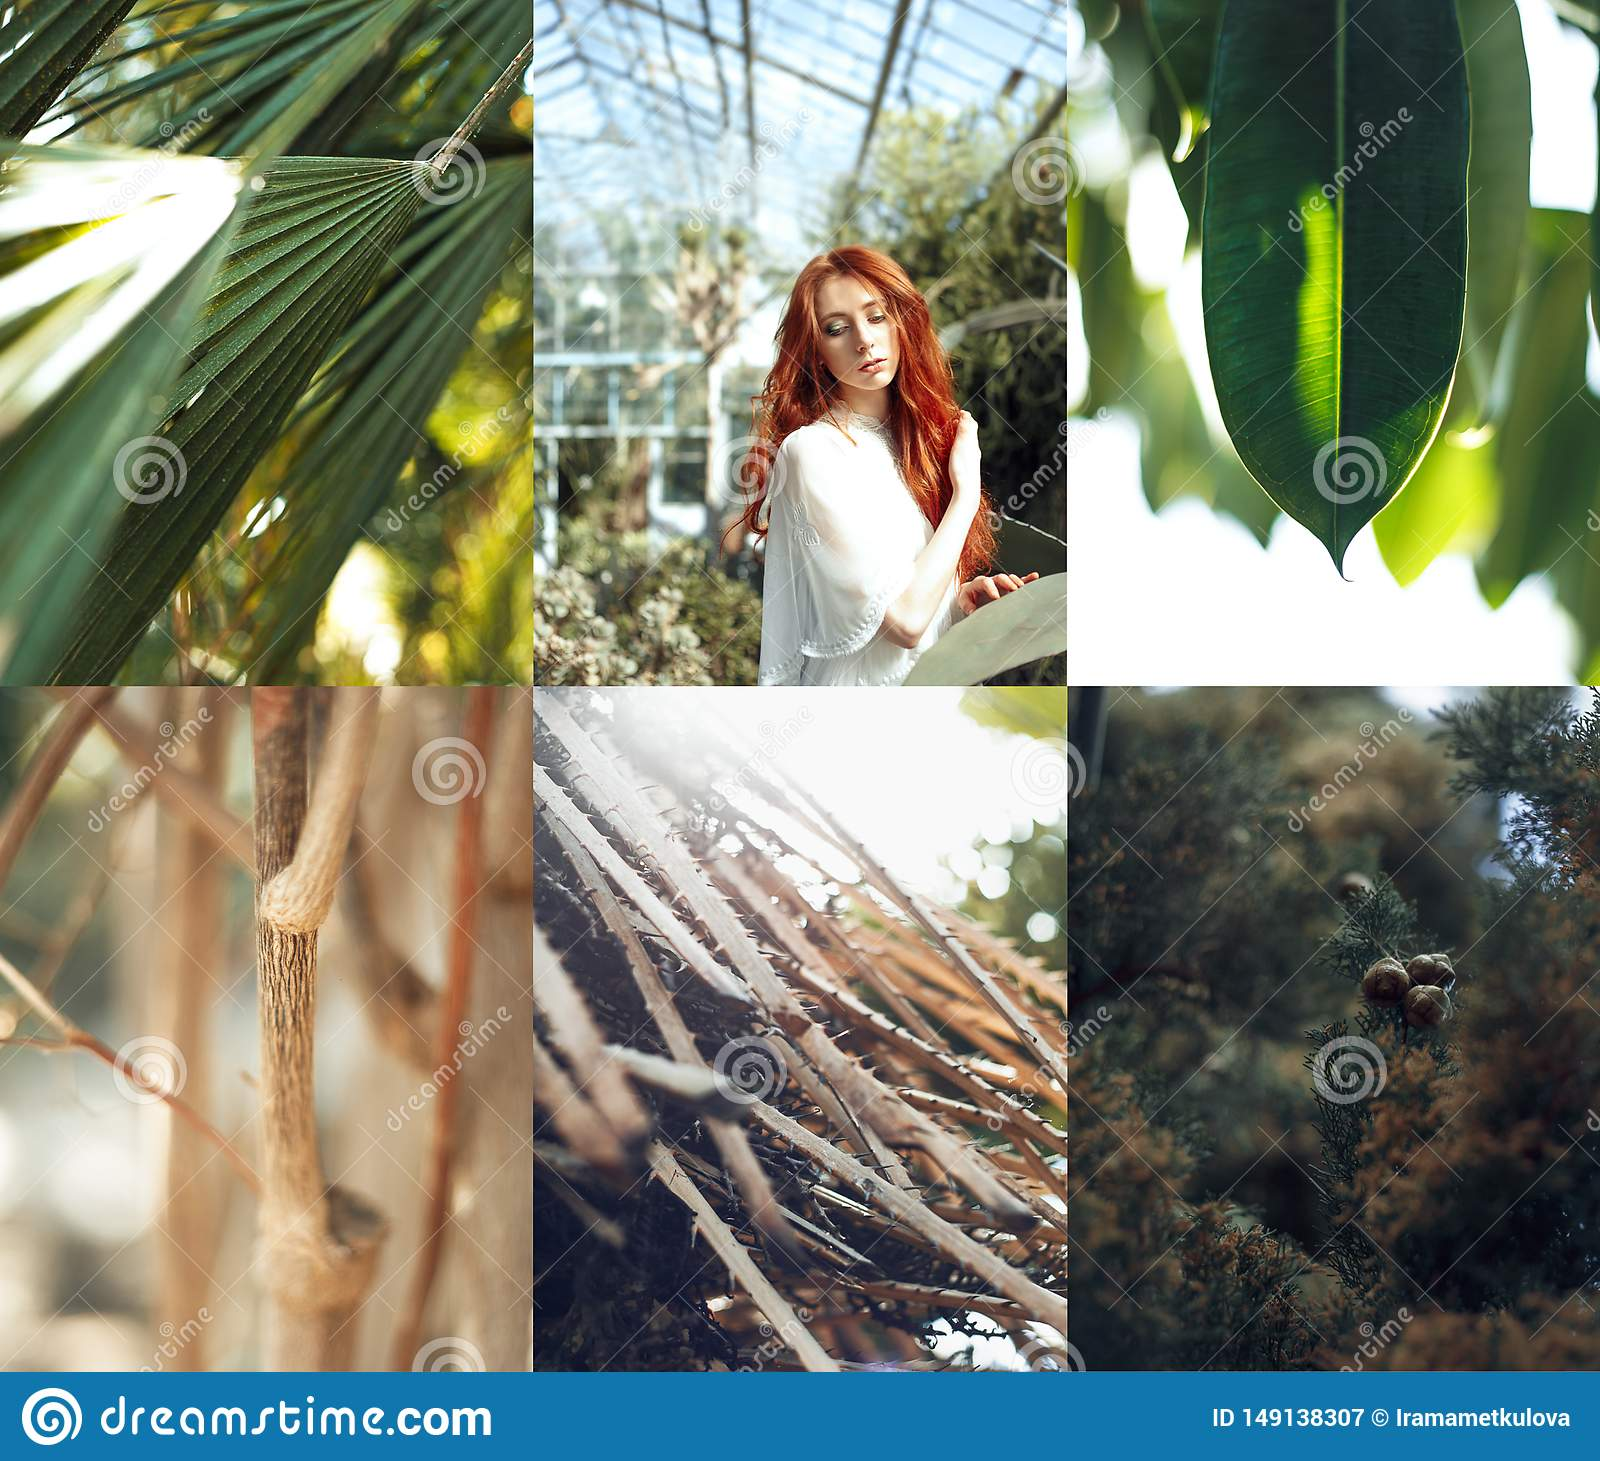 Red hair girl  portrait with tropic plants collage